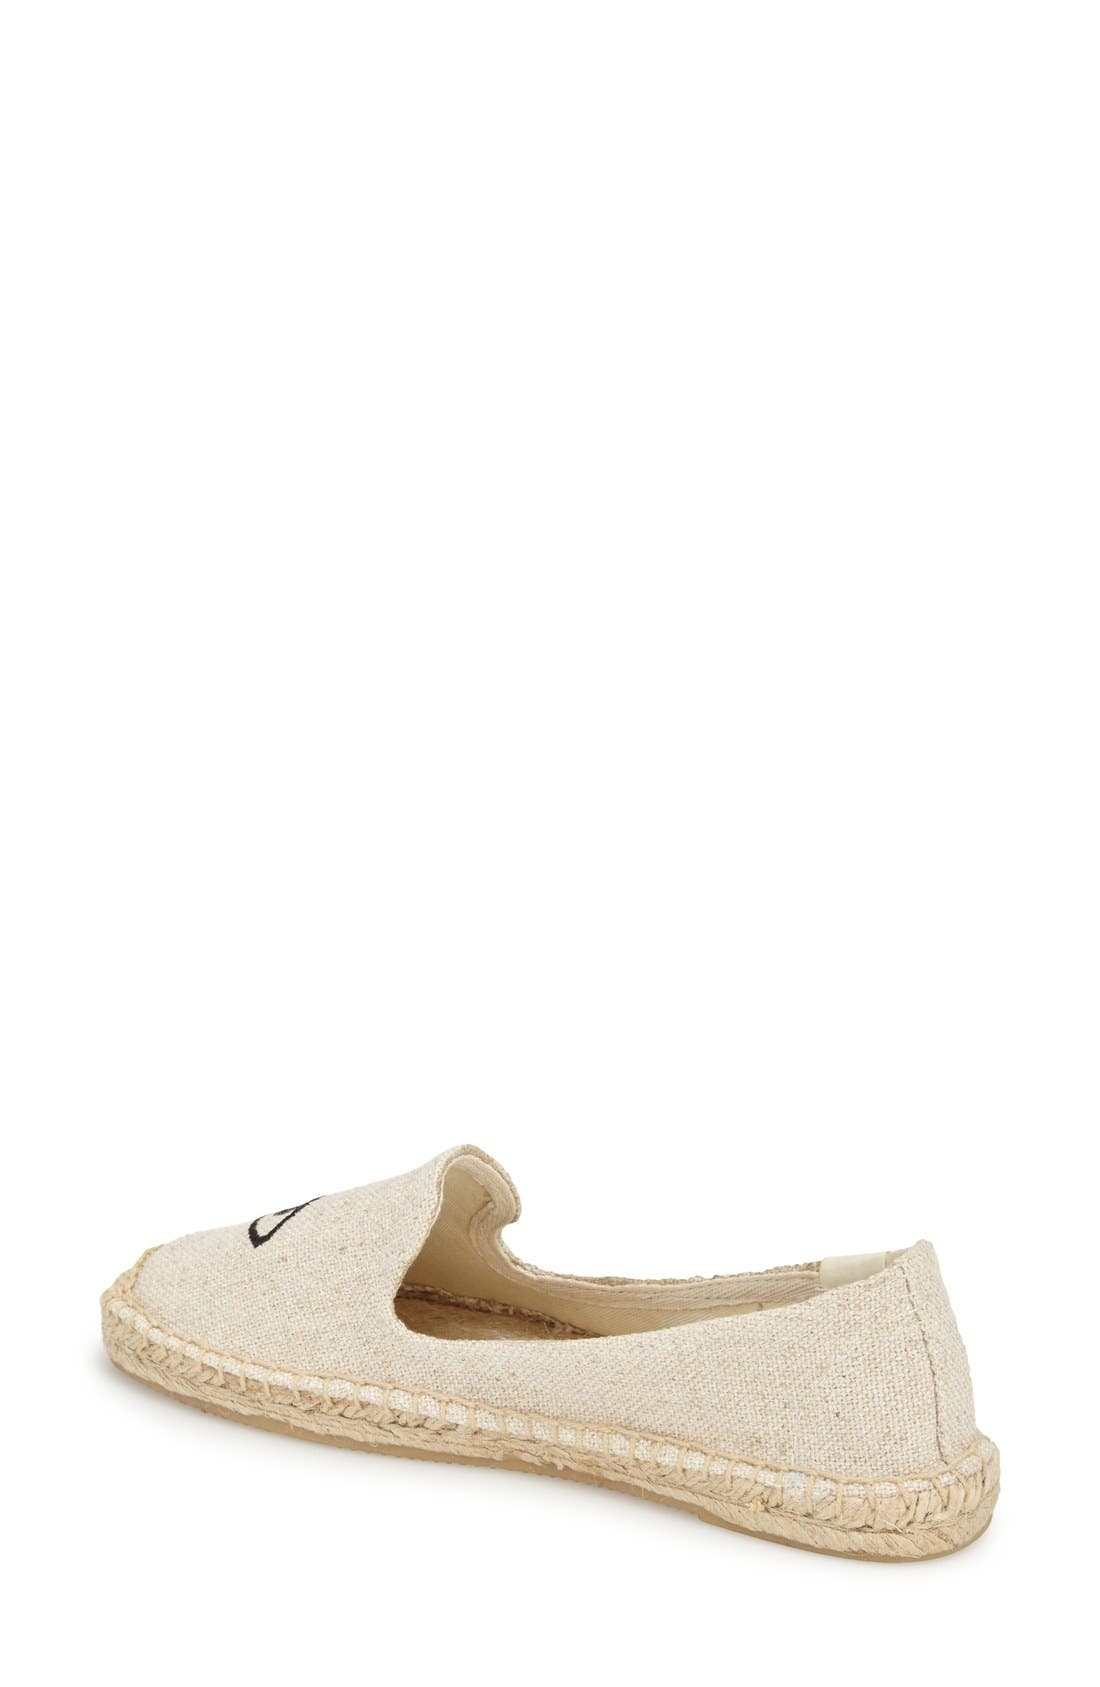 SOLUDOS,                             Jason Polan Espadrille Sandal,                             Alternate thumbnail 3, color,                             WINK SAND